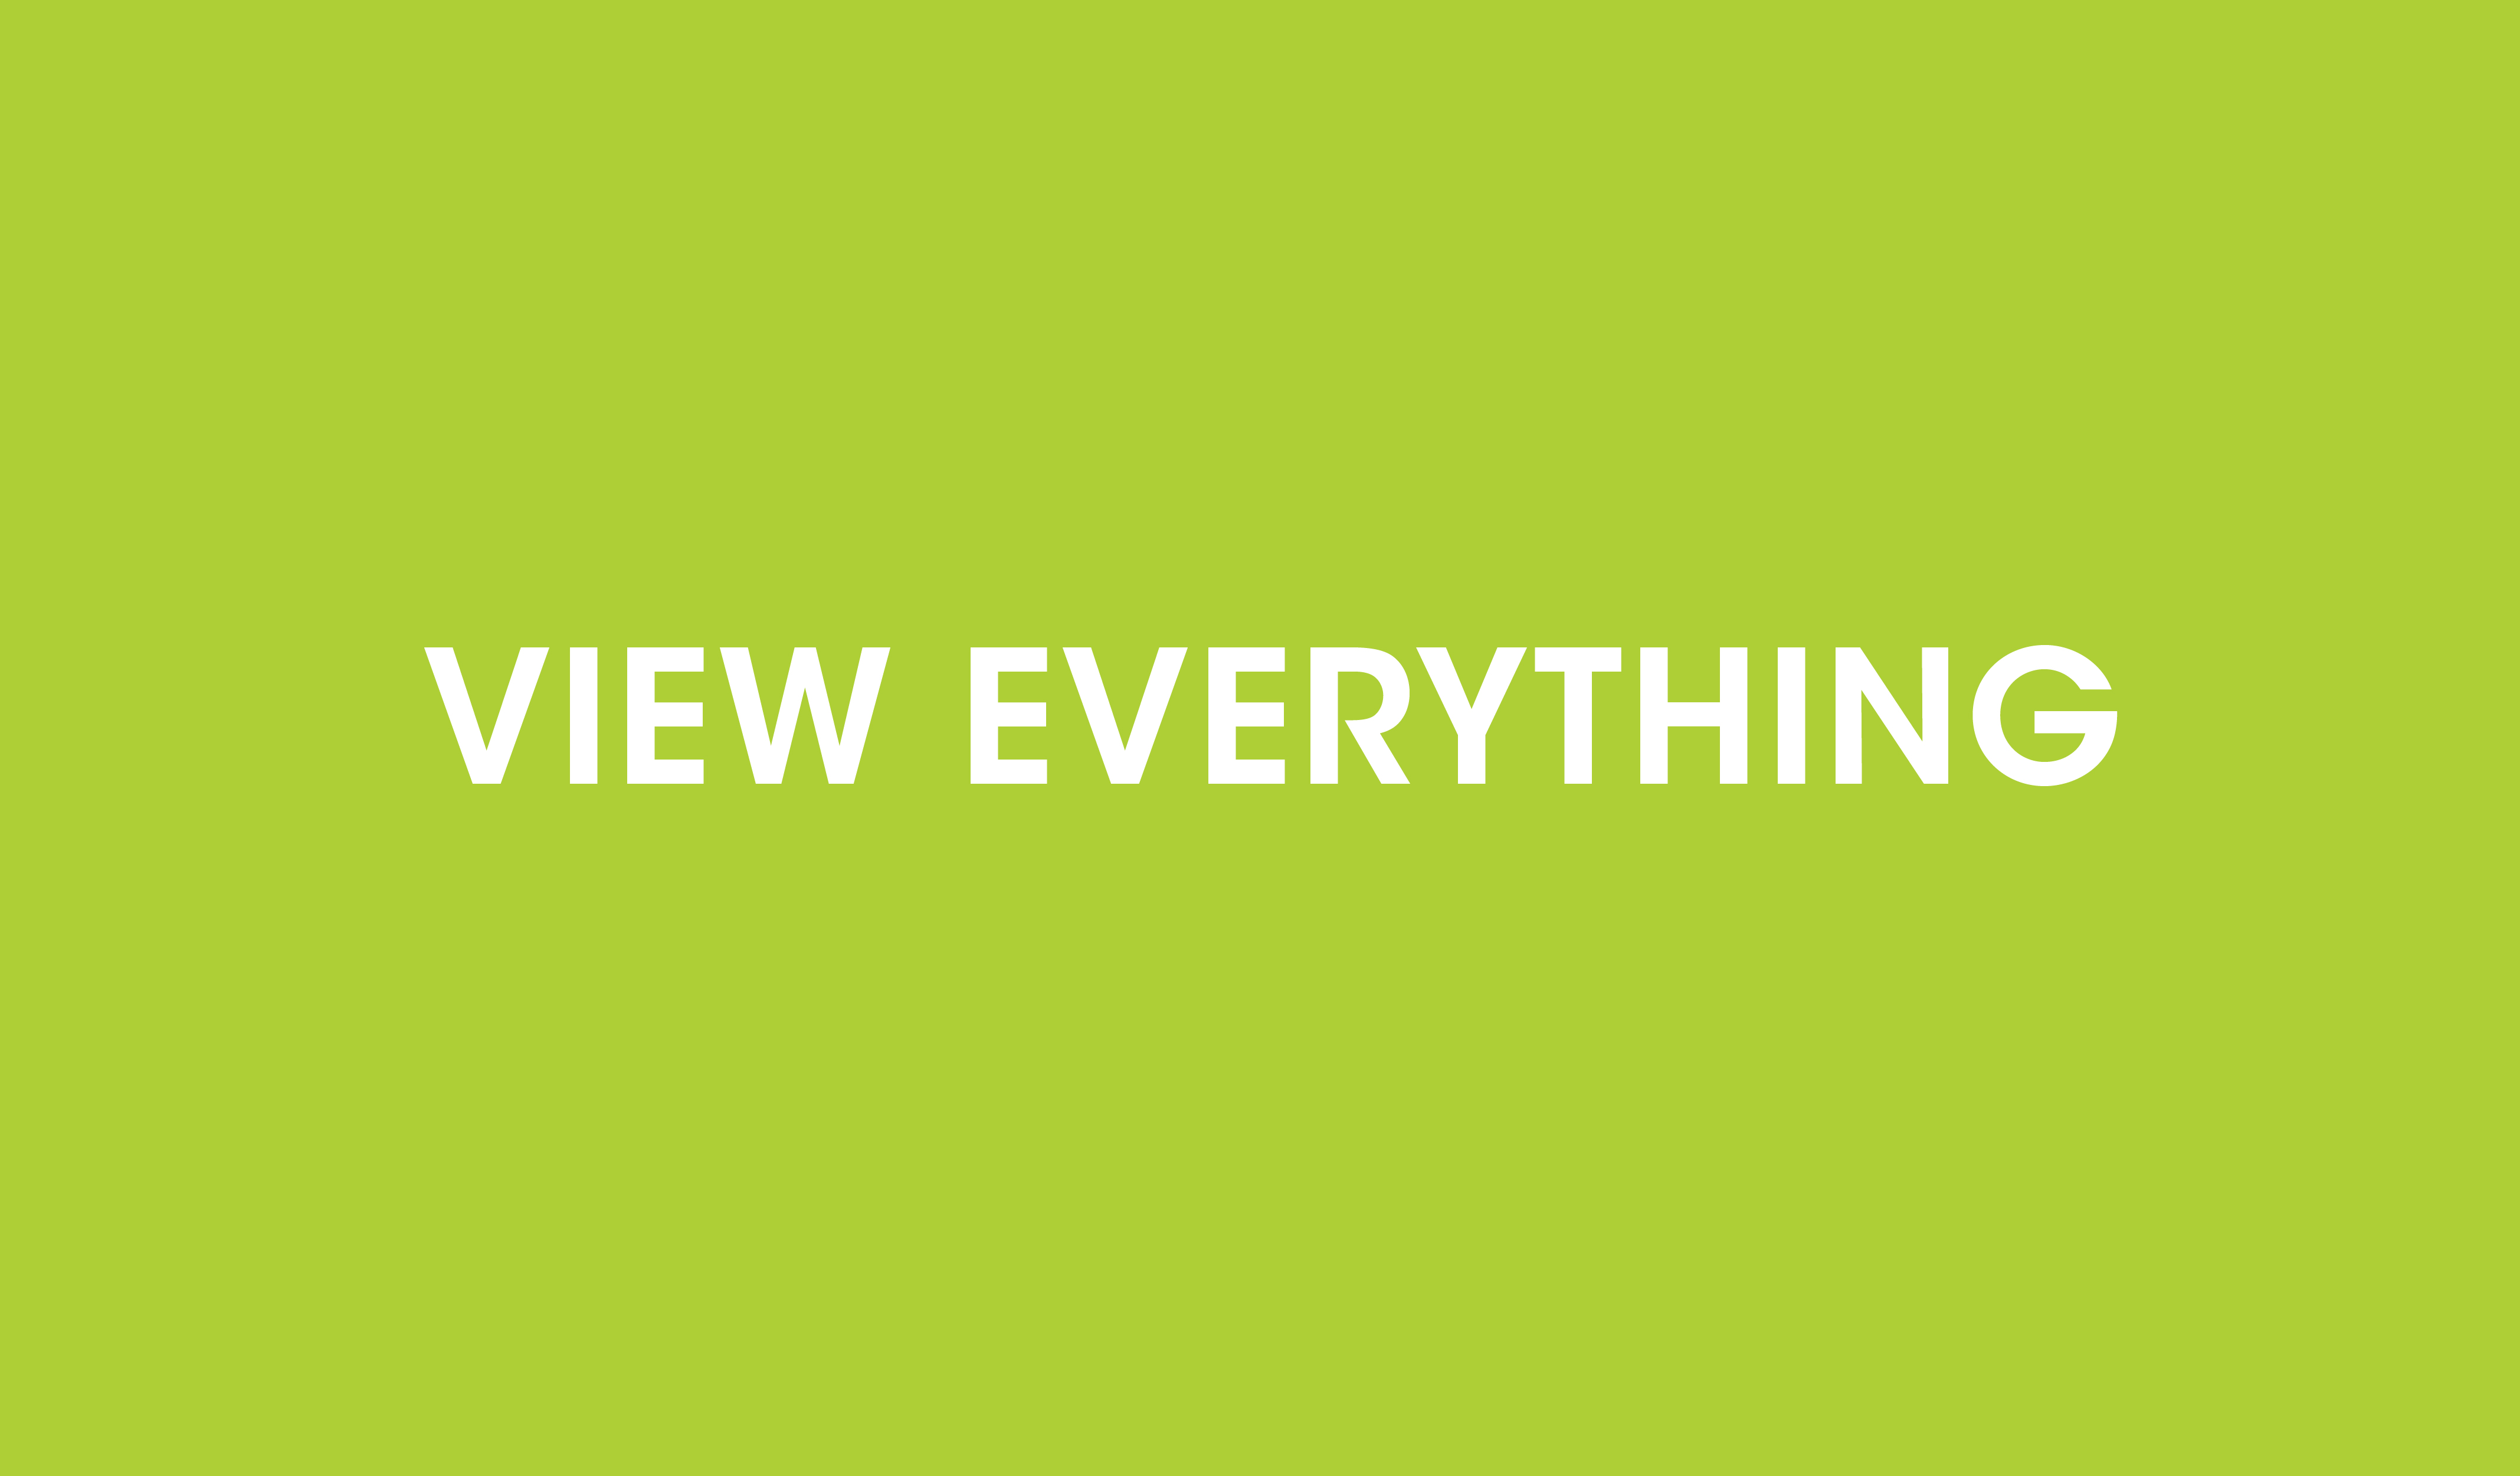 view everything